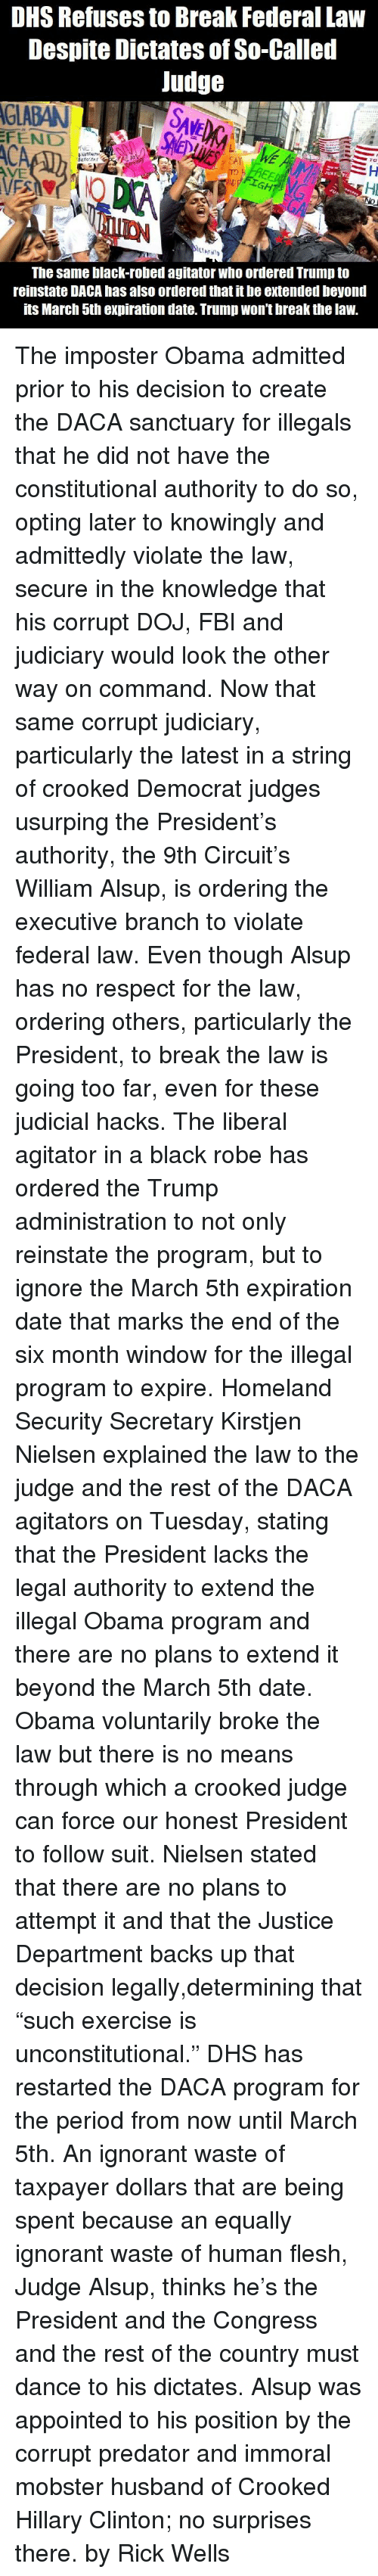 """Fbi, Hillary Clinton, and Ignorant: DHS Refuses to Break Federal Law  Despite Dictates of So-Called  Judge  CA  ES  Hl  The same black-robed agitator who ordered Trump to  reinstate DACA has also ordered that it be extended beyond  its March 5th expiration date. Trump won't break the law. The imposter Obama admitted prior to his decision to create the DACA sanctuary for illegals that he did not have the constitutional authority to do so, opting later to knowingly and admittedly violate the law, secure in the knowledge that his corrupt DOJ, FBI and judiciary would look the other way on command.  Now that same corrupt judiciary, particularly the latest in a string of crooked Democrat judges usurping the President's authority, the 9th Circuit's William Alsup, is ordering the executive branch to violate federal law. Even though Alsup has no respect for the law, ordering others, particularly the President, to break the law is going too far, even for these judicial hacks.  The liberal agitator in a black robe has ordered the Trump administration to not only reinstate the program, but to ignore the March 5th expiration date that marks the end of the six month window for the illegal program to expire.  Homeland Security Secretary Kirstjen Nielsen explained the law to the judge and the rest of the DACA agitators on Tuesday, stating that the President lacks the legal authority to extend the illegal Obama program and there are no plans to extend it beyond the March 5th date. Obama voluntarily broke the law but there is no means through which a crooked judge can force our honest President to follow suit.  Nielsen stated that there are no plans to attempt it and that the Justice Department backs up that decision legally,determining that """"such exercise is unconstitutional.""""  DHS has restarted the DACA program for the period from now until March 5th. An ignorant waste of taxpayer dollars that are being spent because an equally ignorant waste of human flesh, Judge Alsup, thinks he'"""